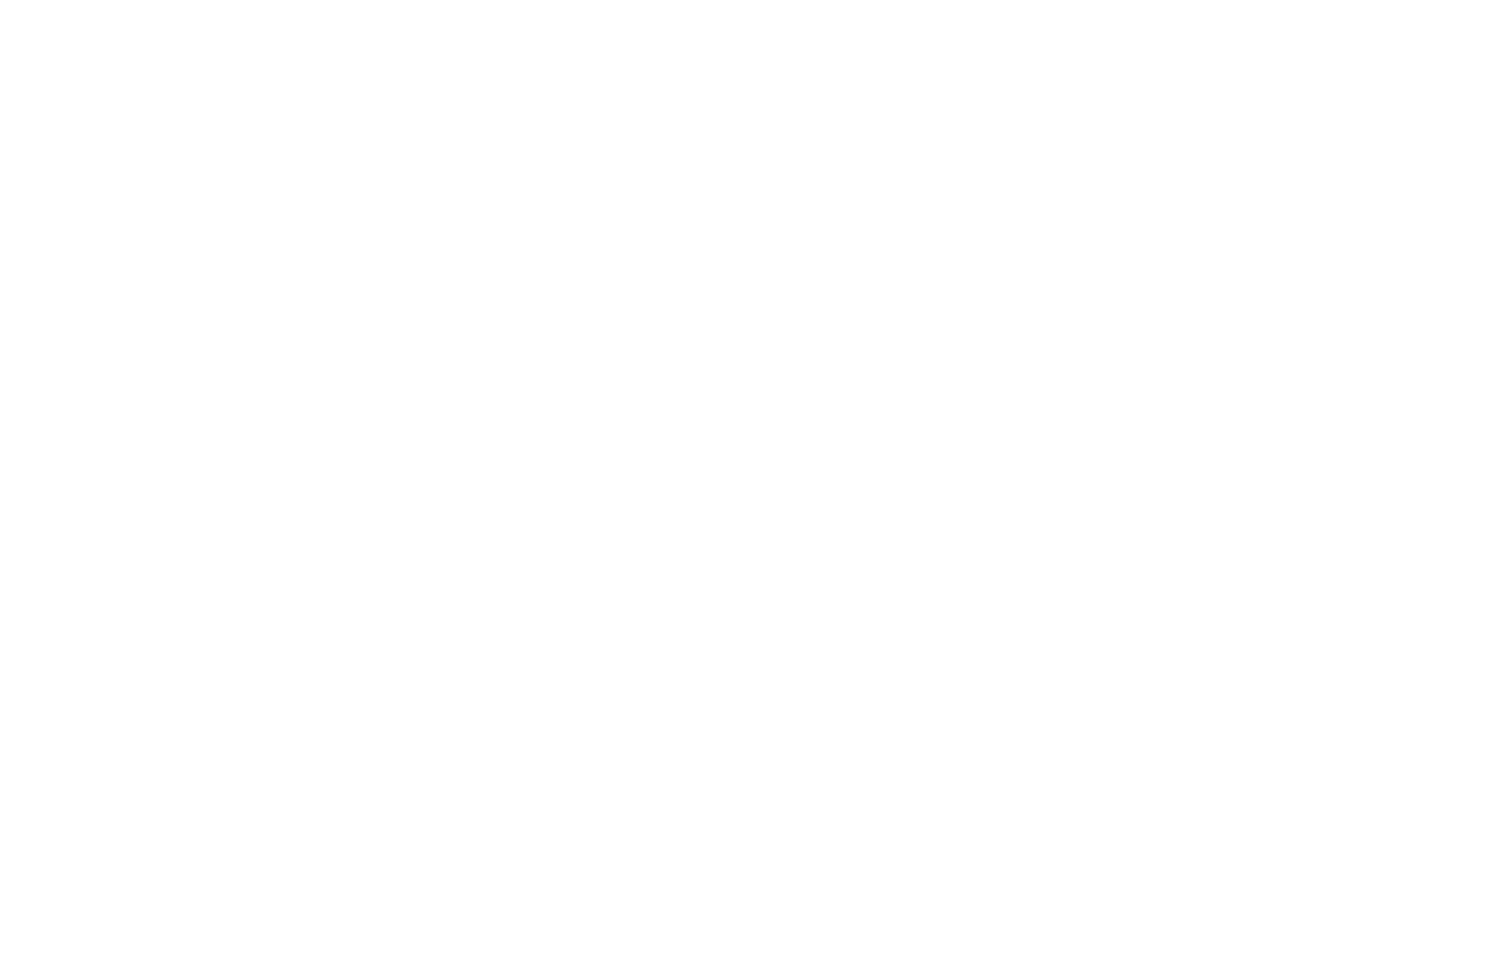 Matt and the Skeleton Crew